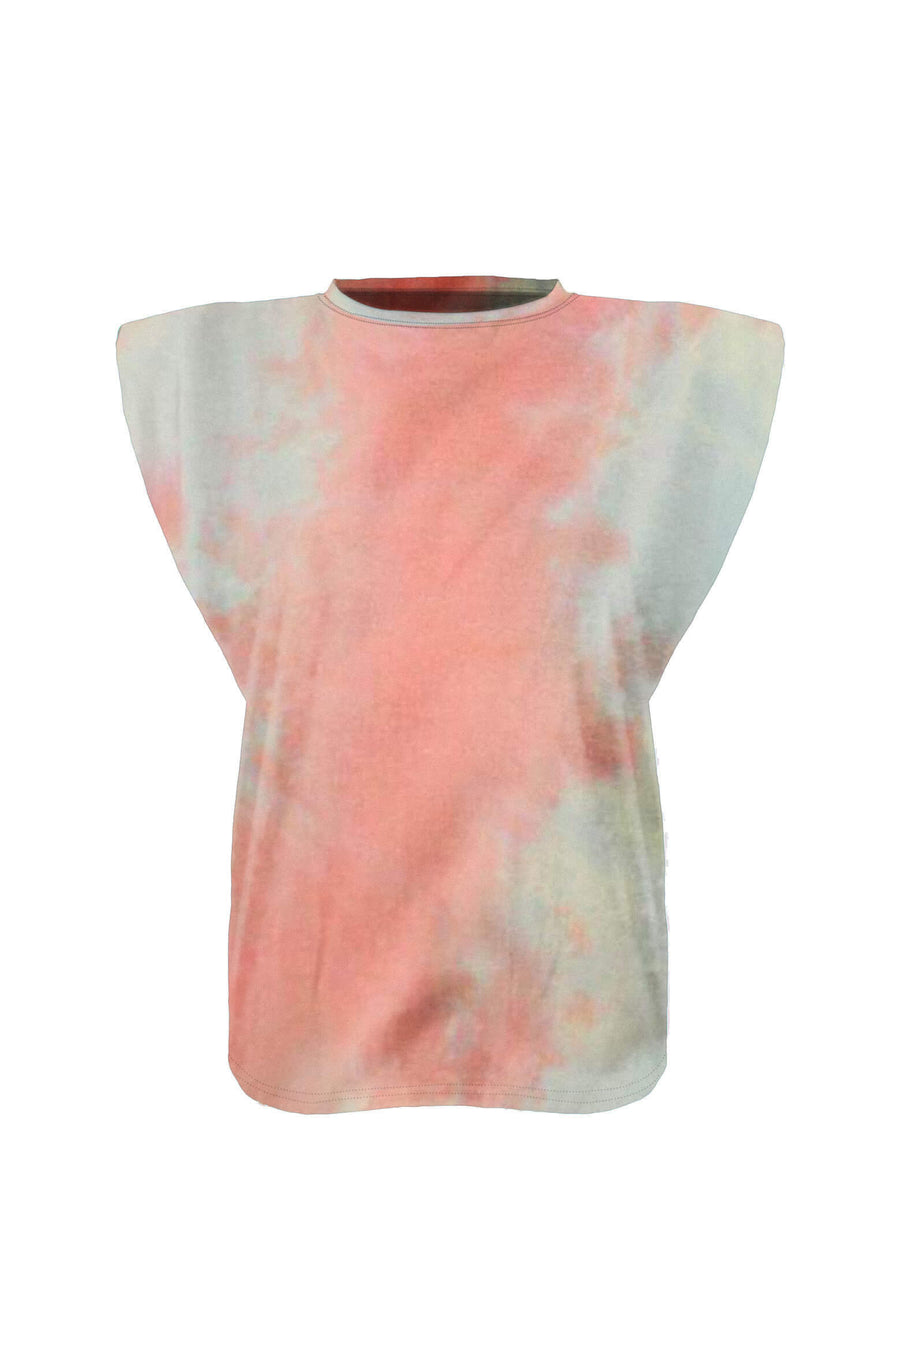 Ducie London Saskia Tee in Sky Tie Dye from The New Trend